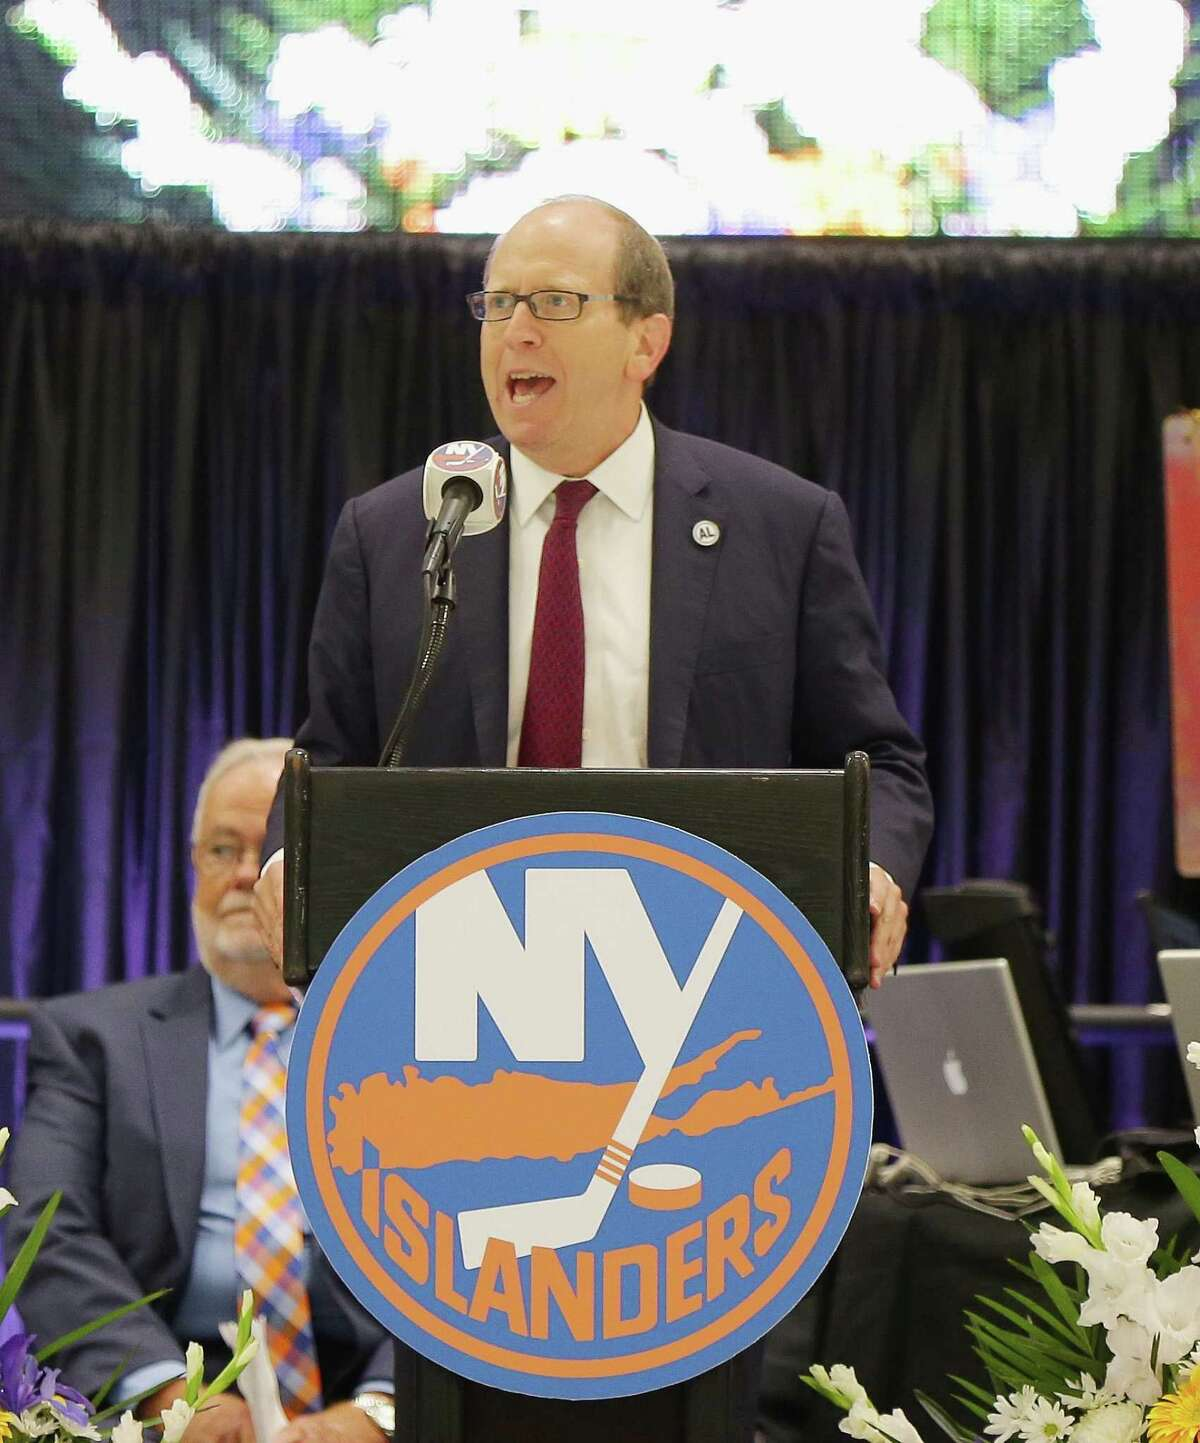 EAST MEADOW, NY - AUGUST 29: New York Islanders owner Jon Ledecky addresses the guests during the New York Islanders memorial service for Al Arbour on August 29, 2016 in East Meadow, New York. (Photo by Andy Marlin/Getty Images)